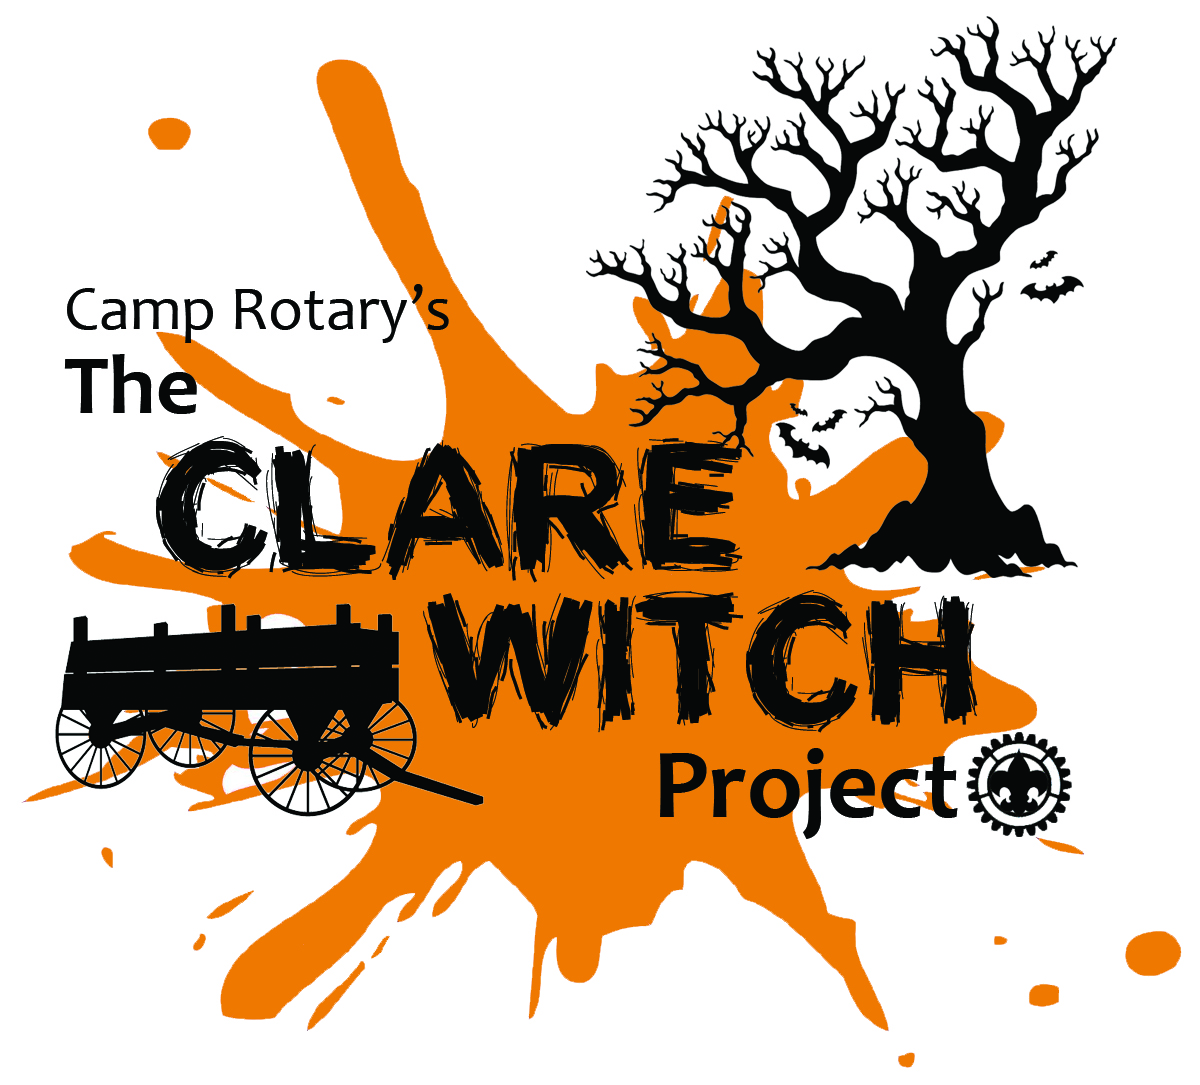 Michigan Crossroads Council - Camp Rotary's Clare Witch Project